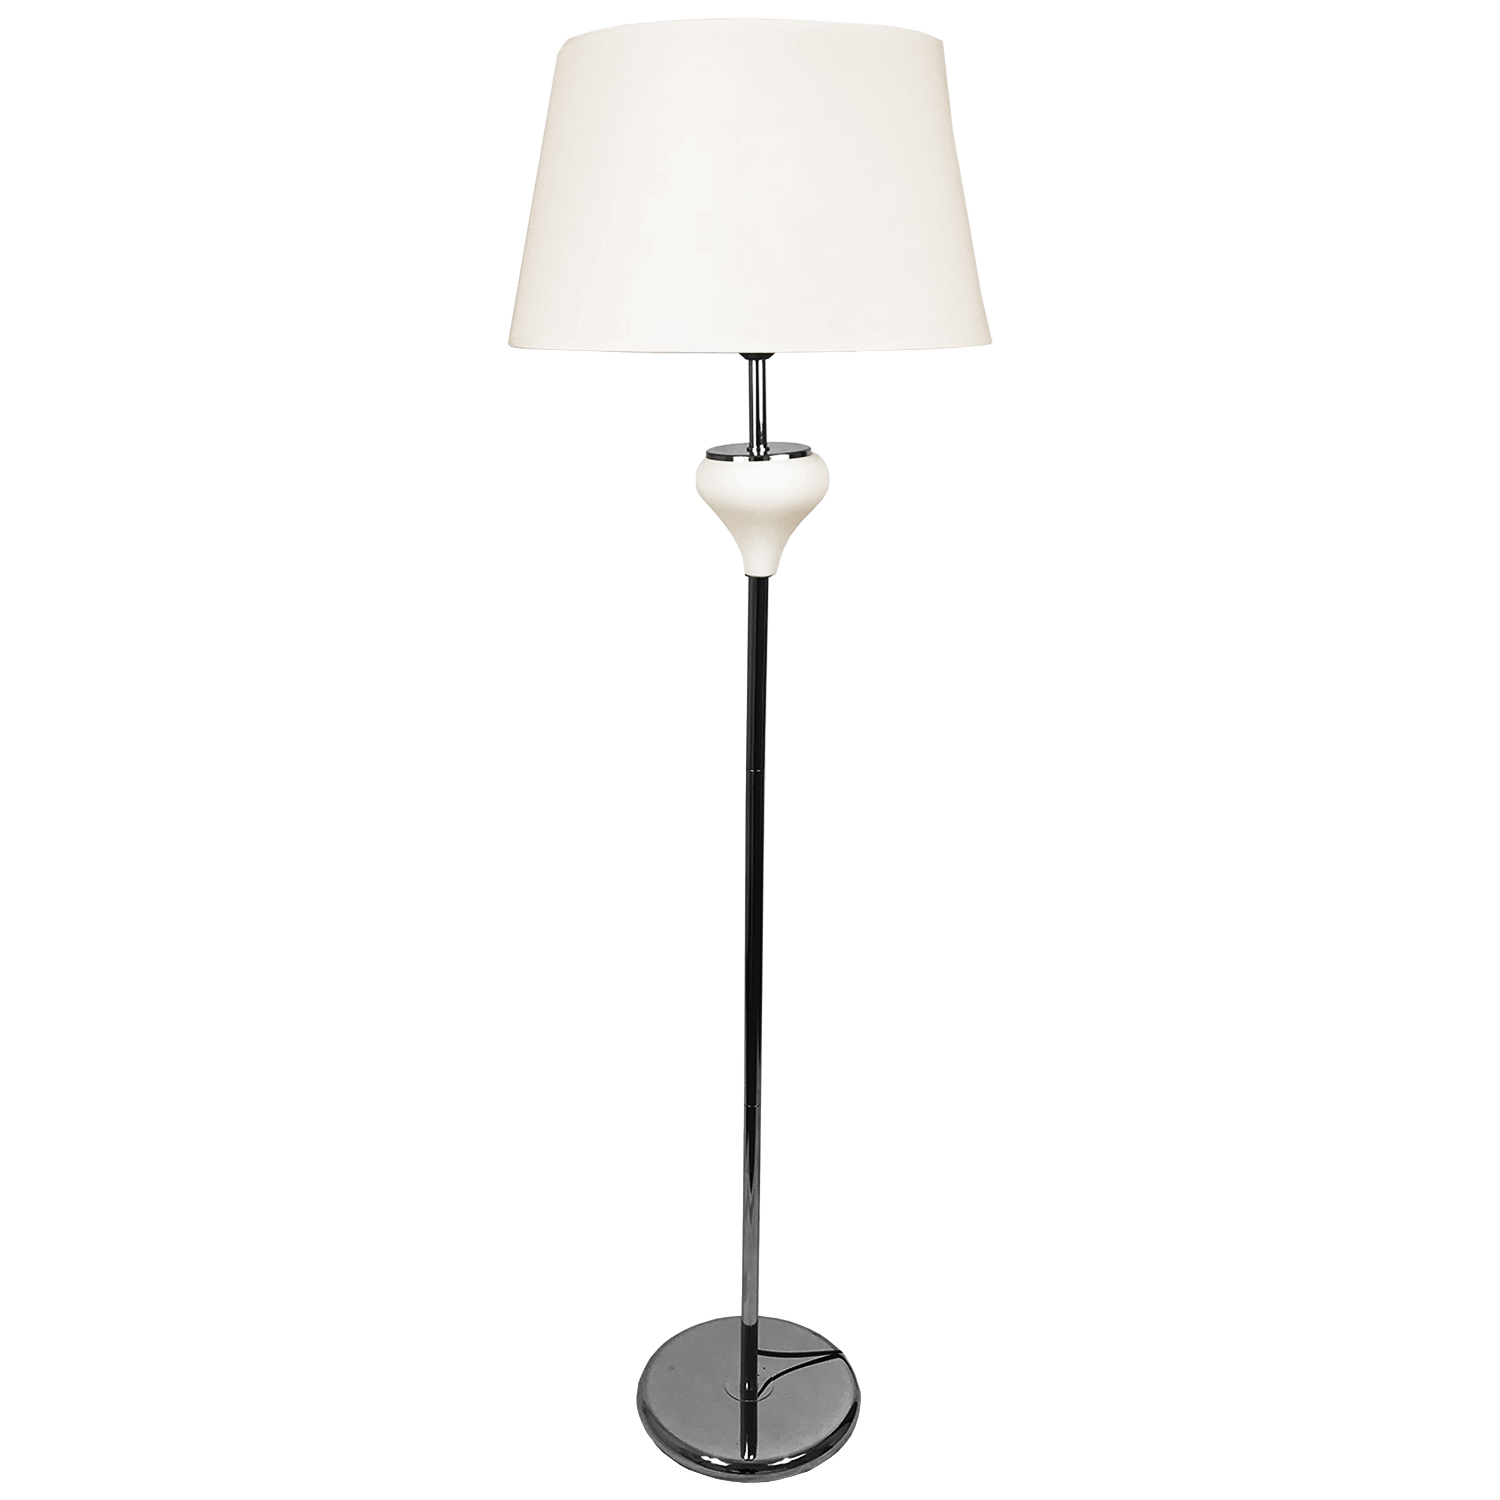 chrom stehlampe leselampe leseleuchte modern chrom metall mit stoffschirm creme ebay. Black Bedroom Furniture Sets. Home Design Ideas